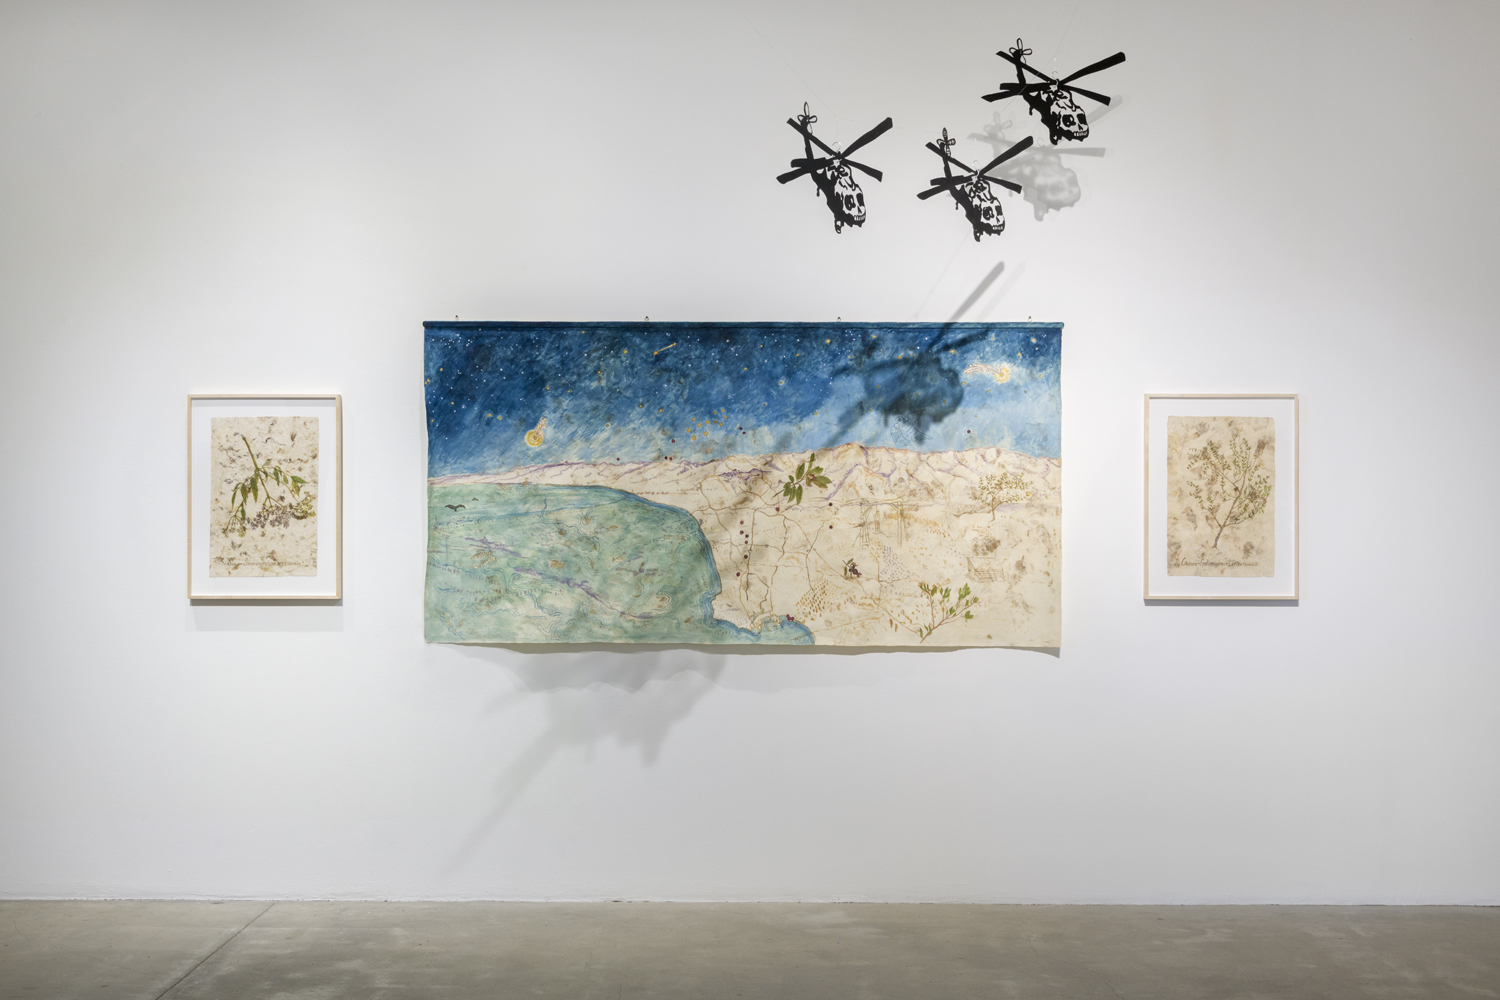 Sandy Rodriguez, installation image, 2018, photograph by Jeff McLane